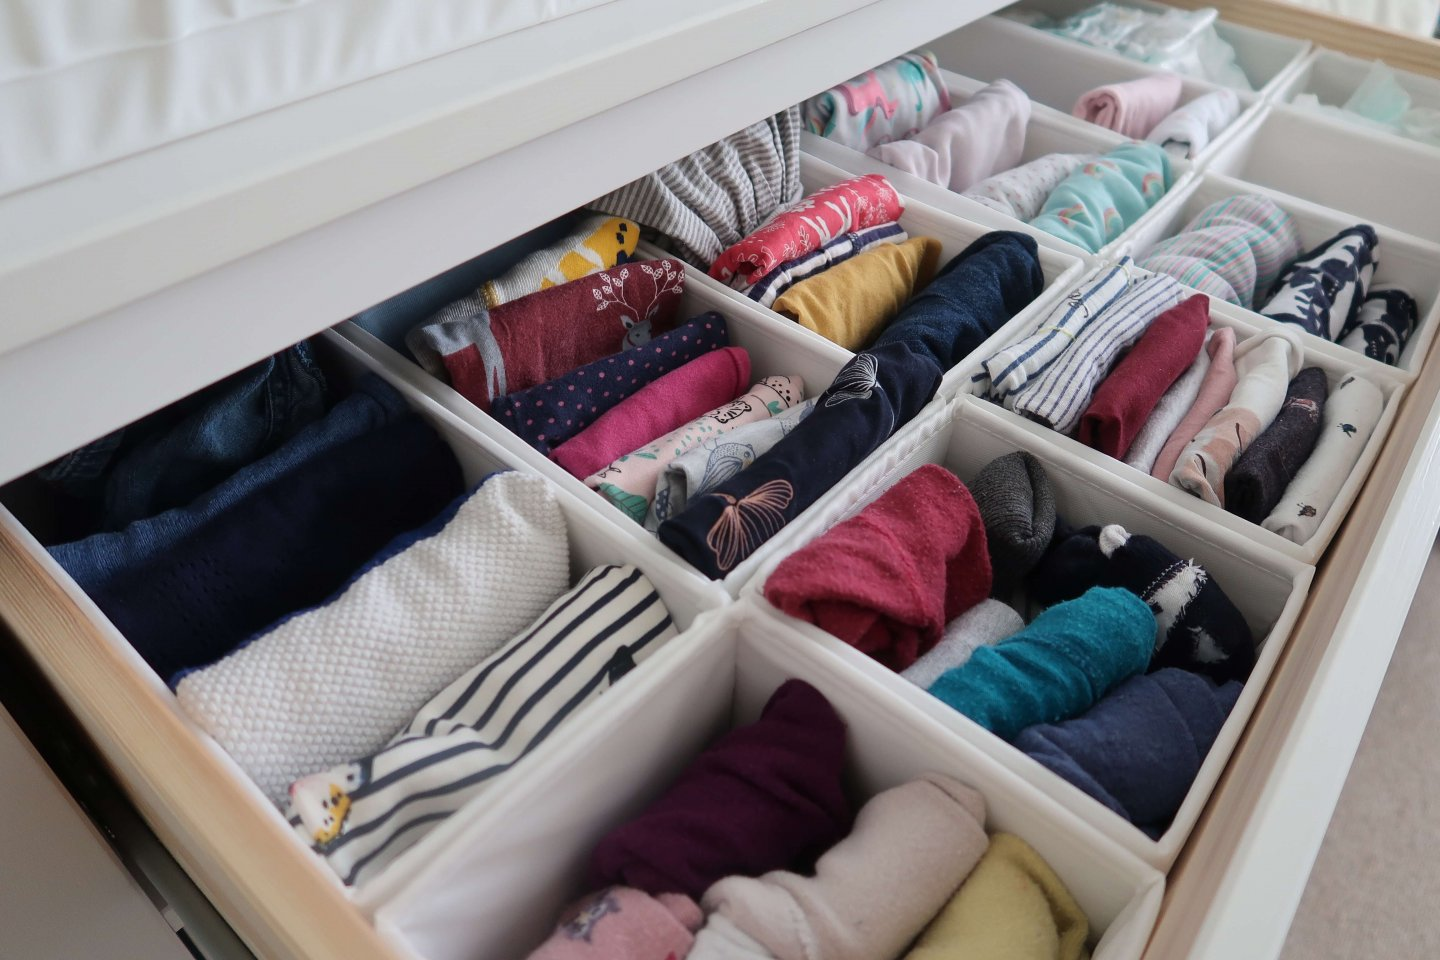 Using the KonMari folding technique to organise baby and toddler clothing.